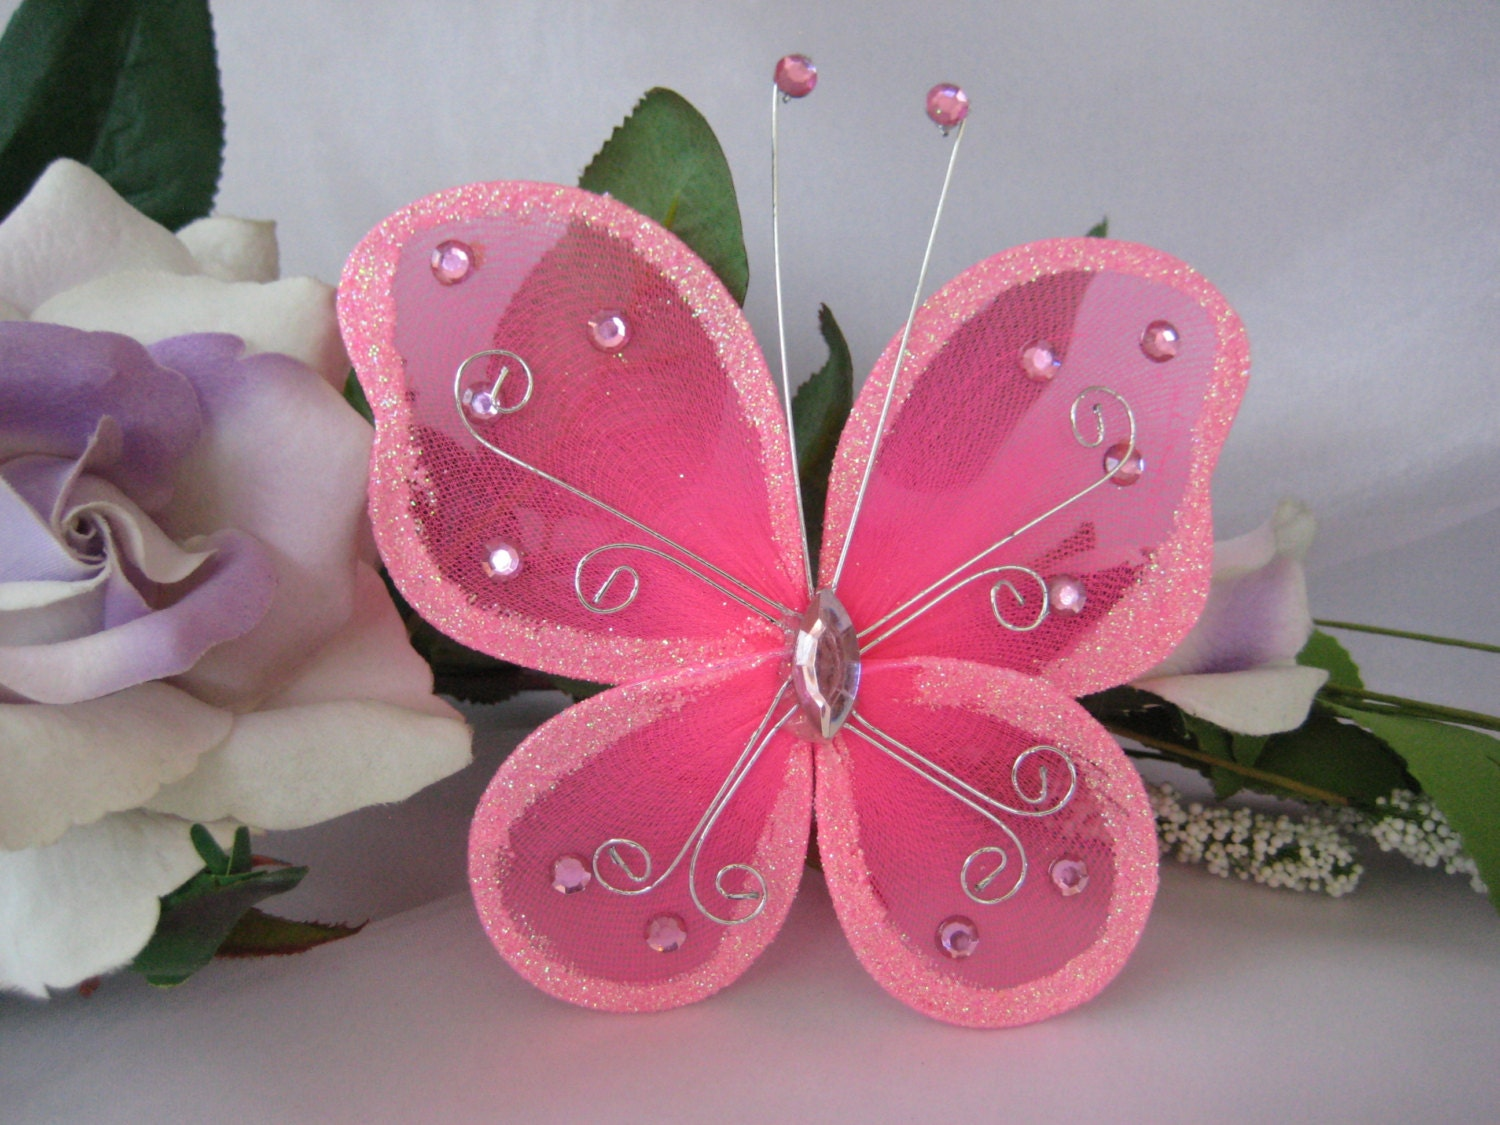 5 Hot Pink Nylon Butterflies for Baby Shower Wedding | Etsy